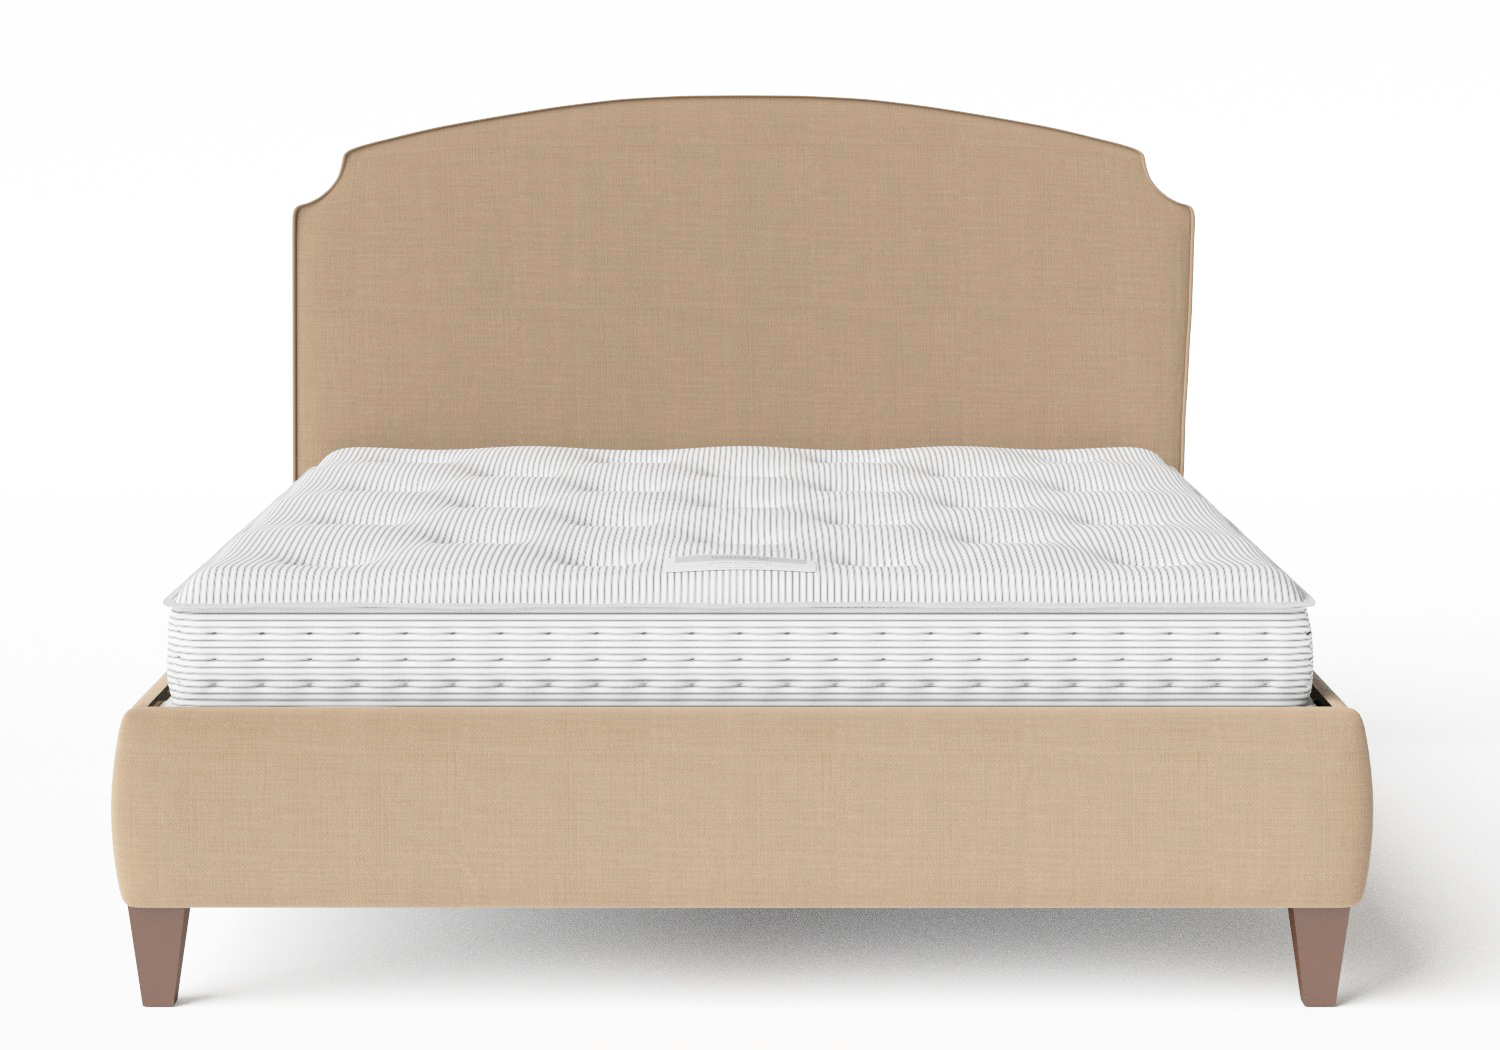 Lide Upholstered Bed in Straw fabric with piping shown with Juno 1 mattress